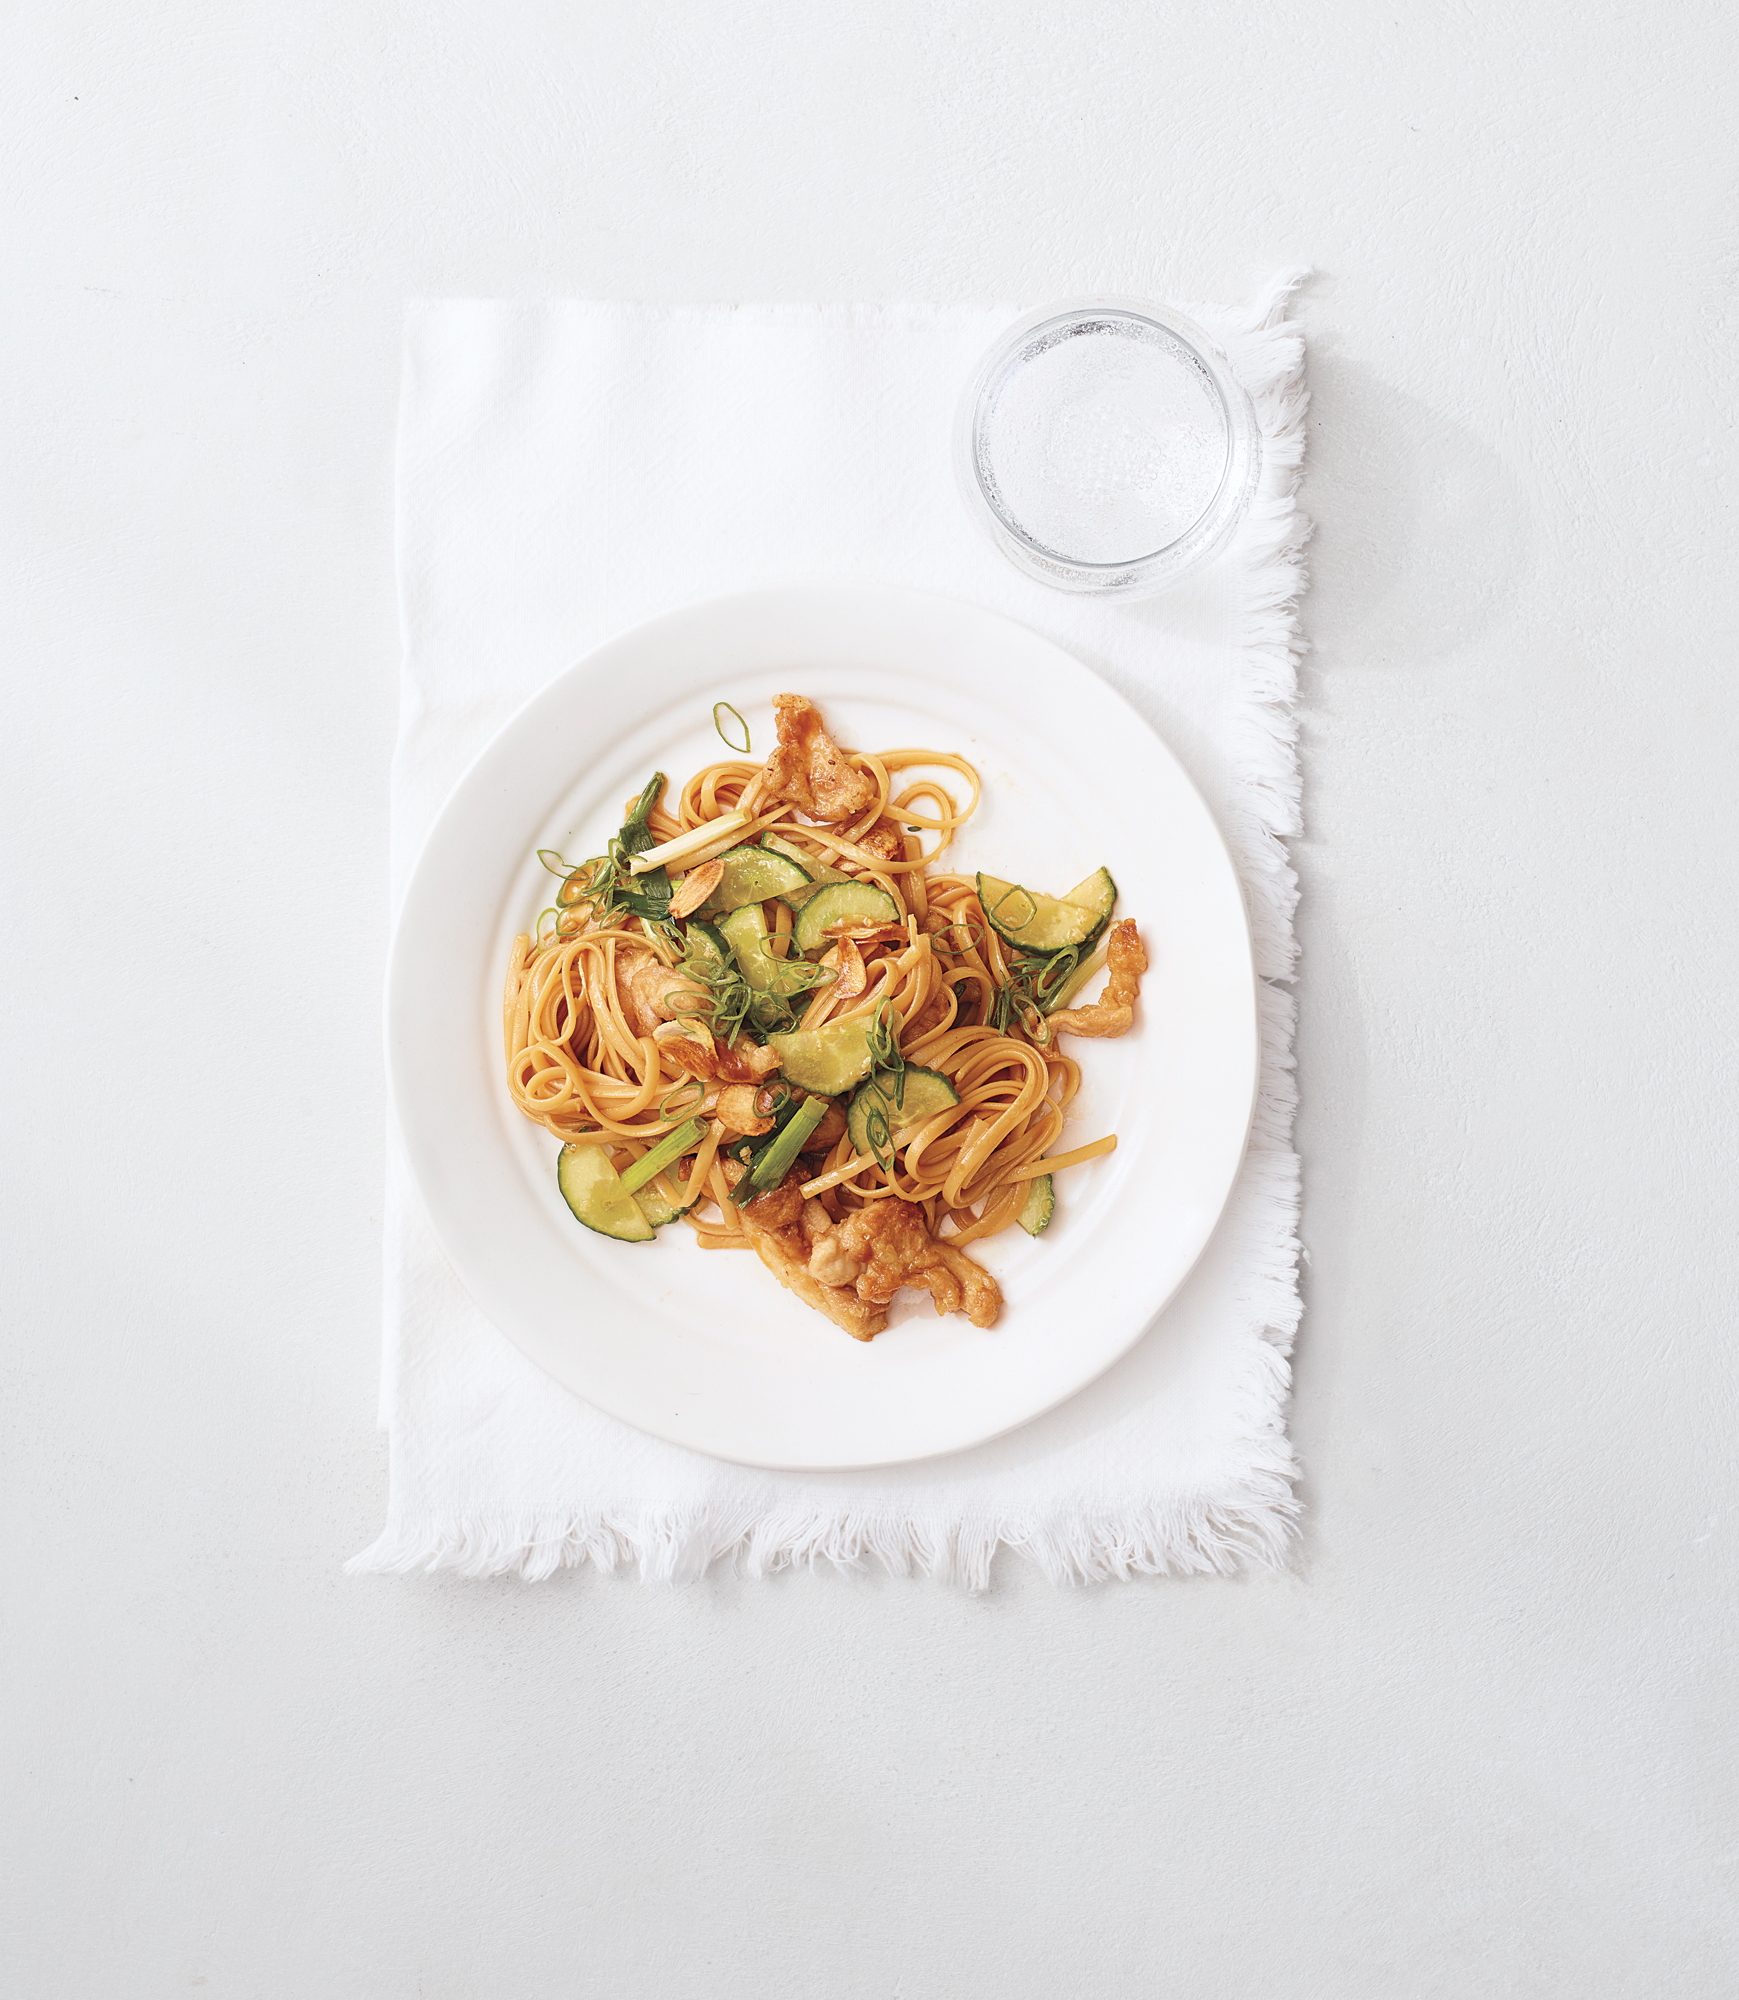 Chicken and Cucumber Stir-Fry with Noodles and Crispy Garlic